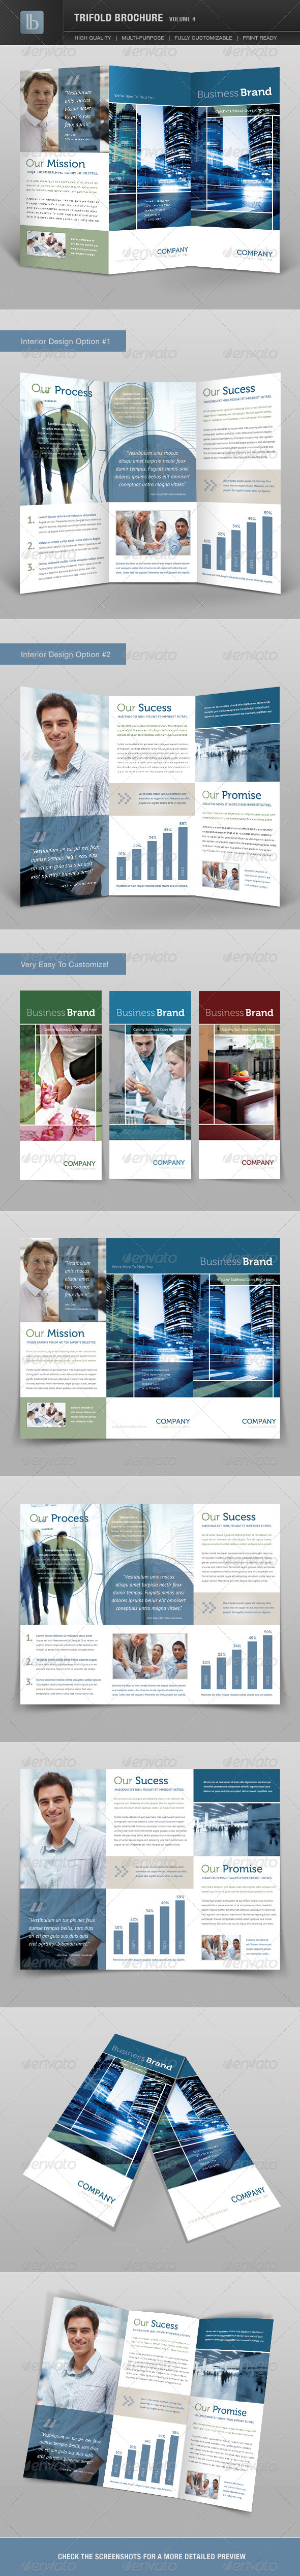 Trifold Brochure | Volume 4 - Corporate Brochures